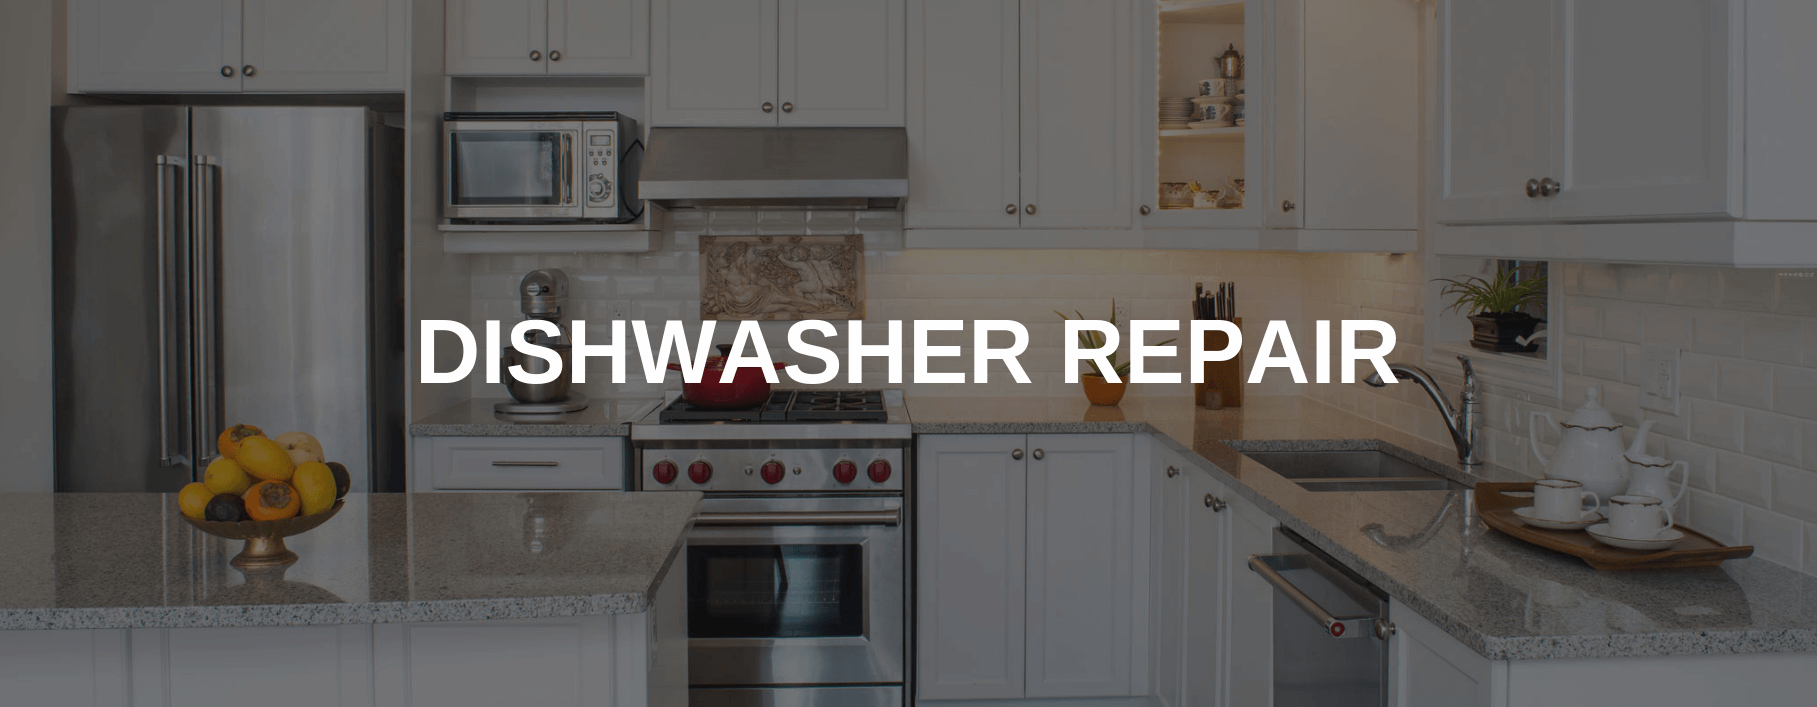 dishwasher repair orem